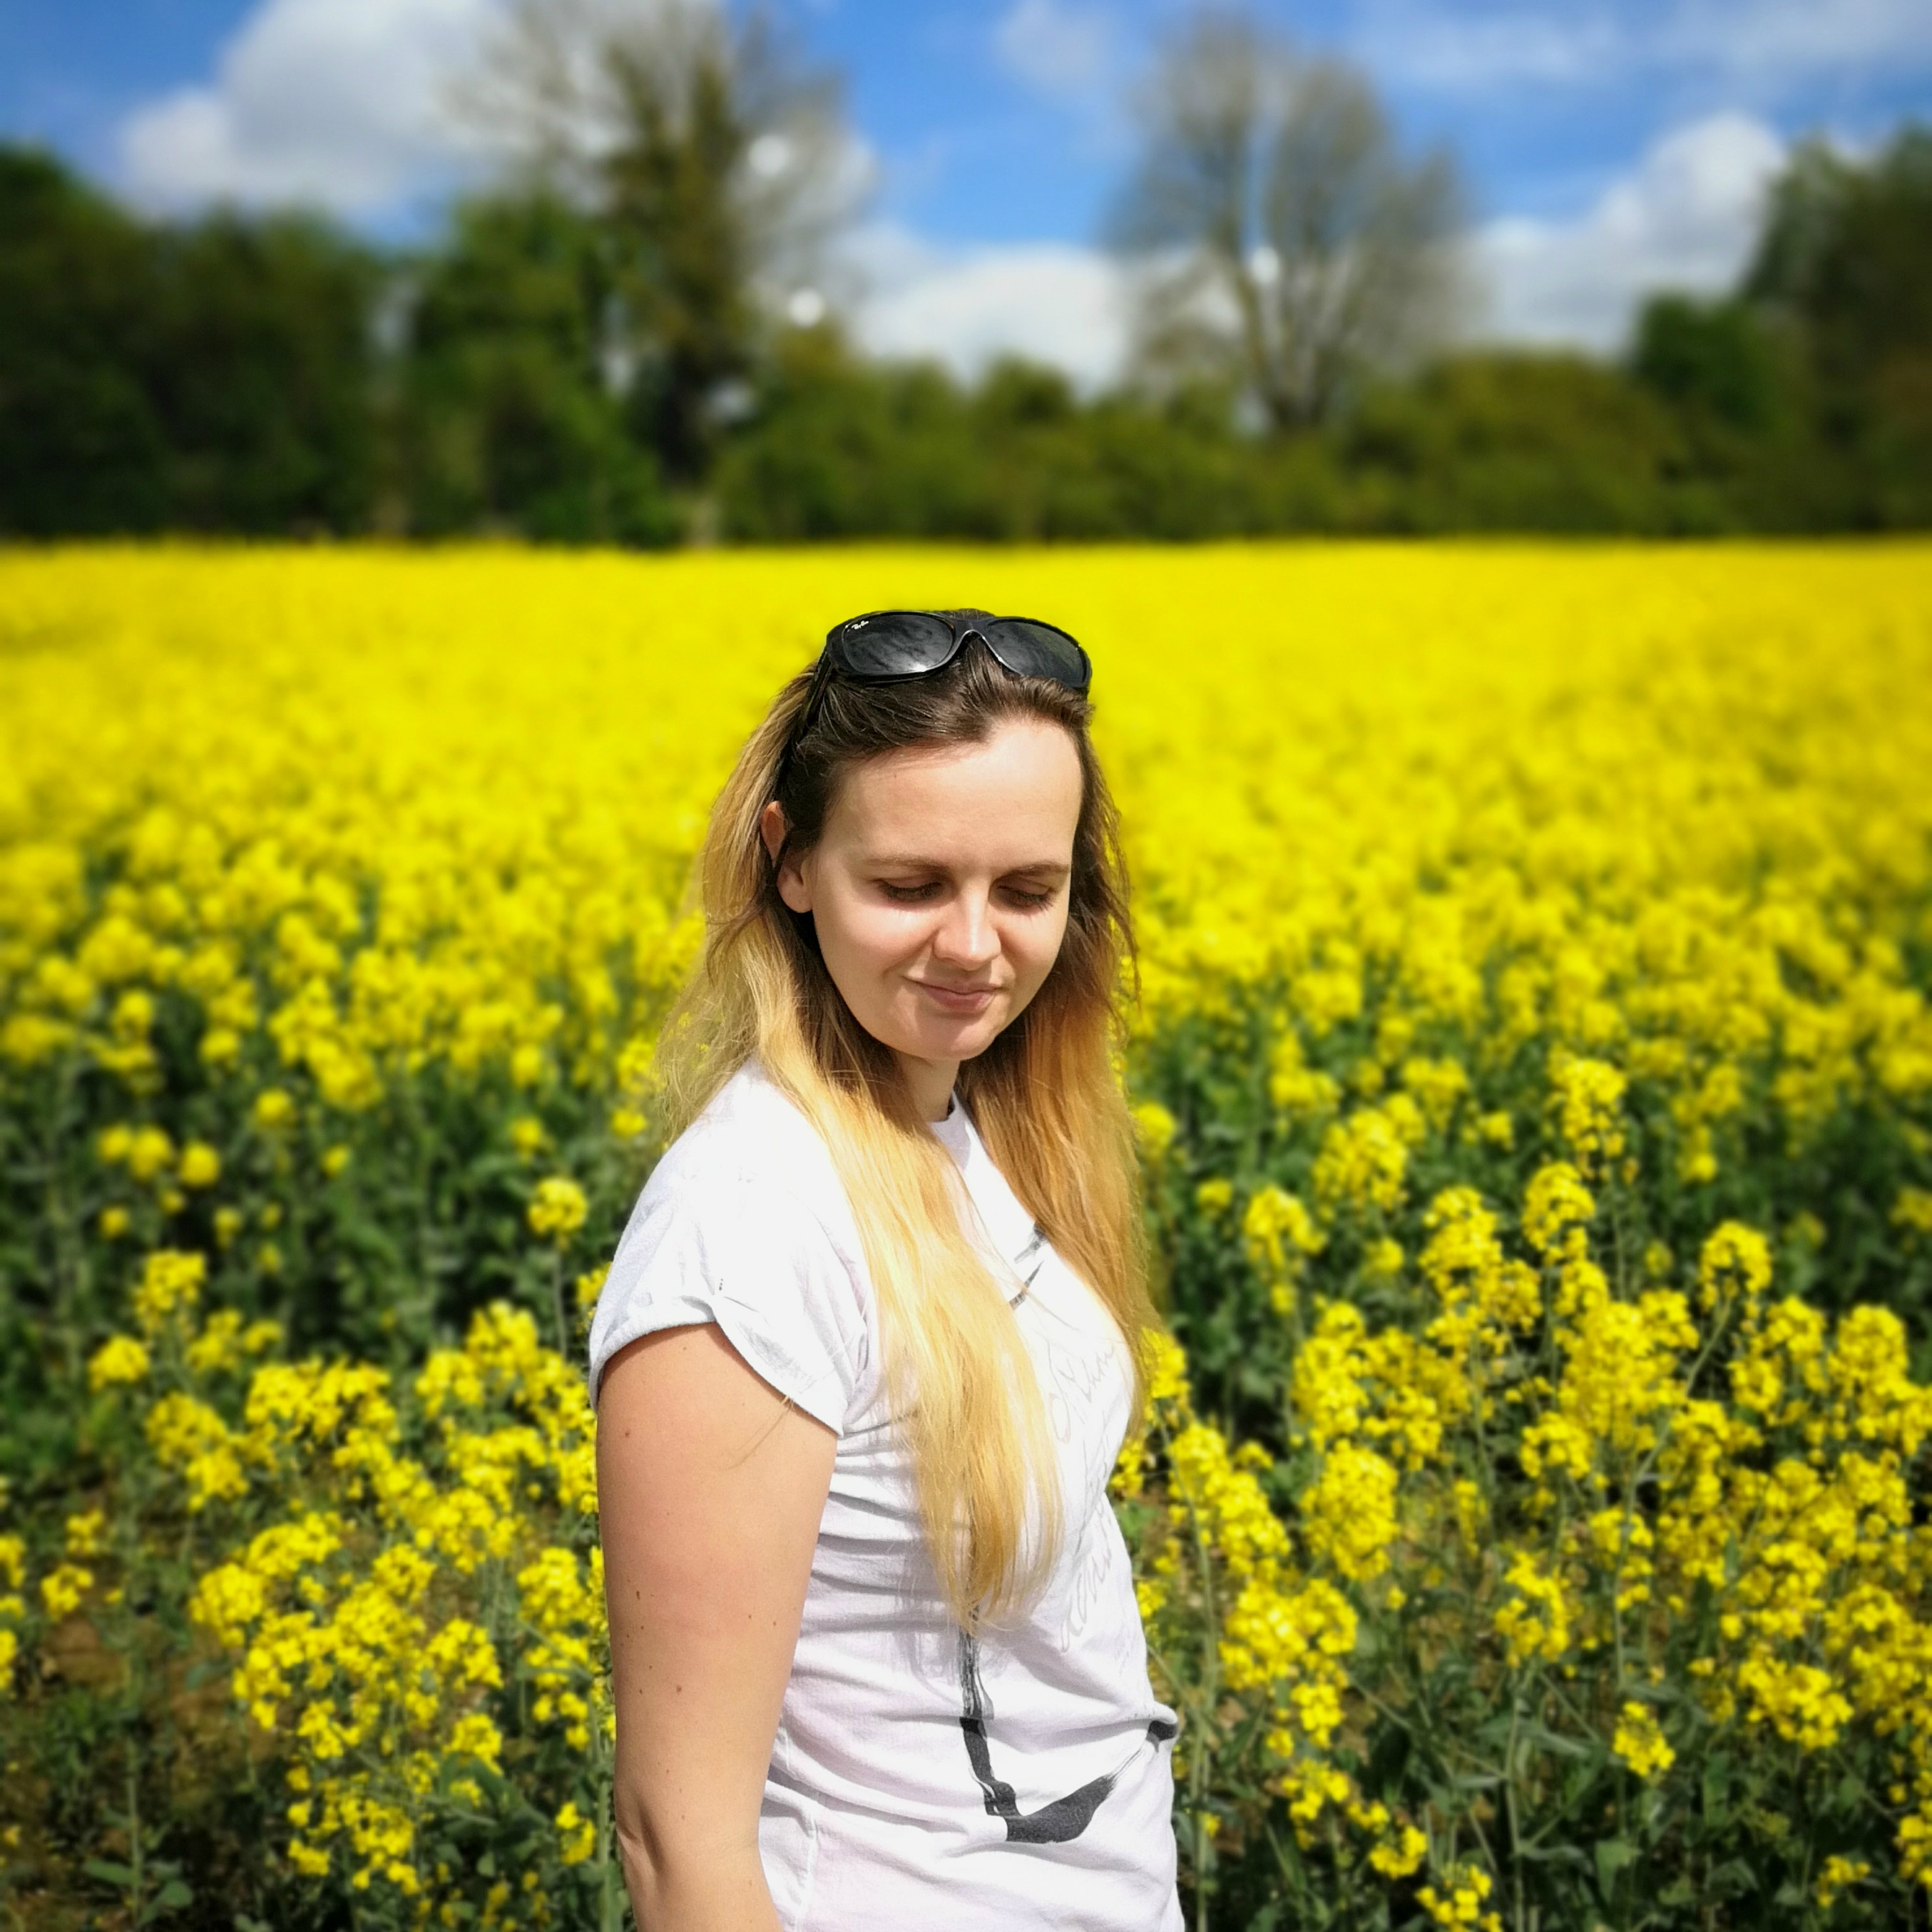 Enjoying Life in Rapeseed field